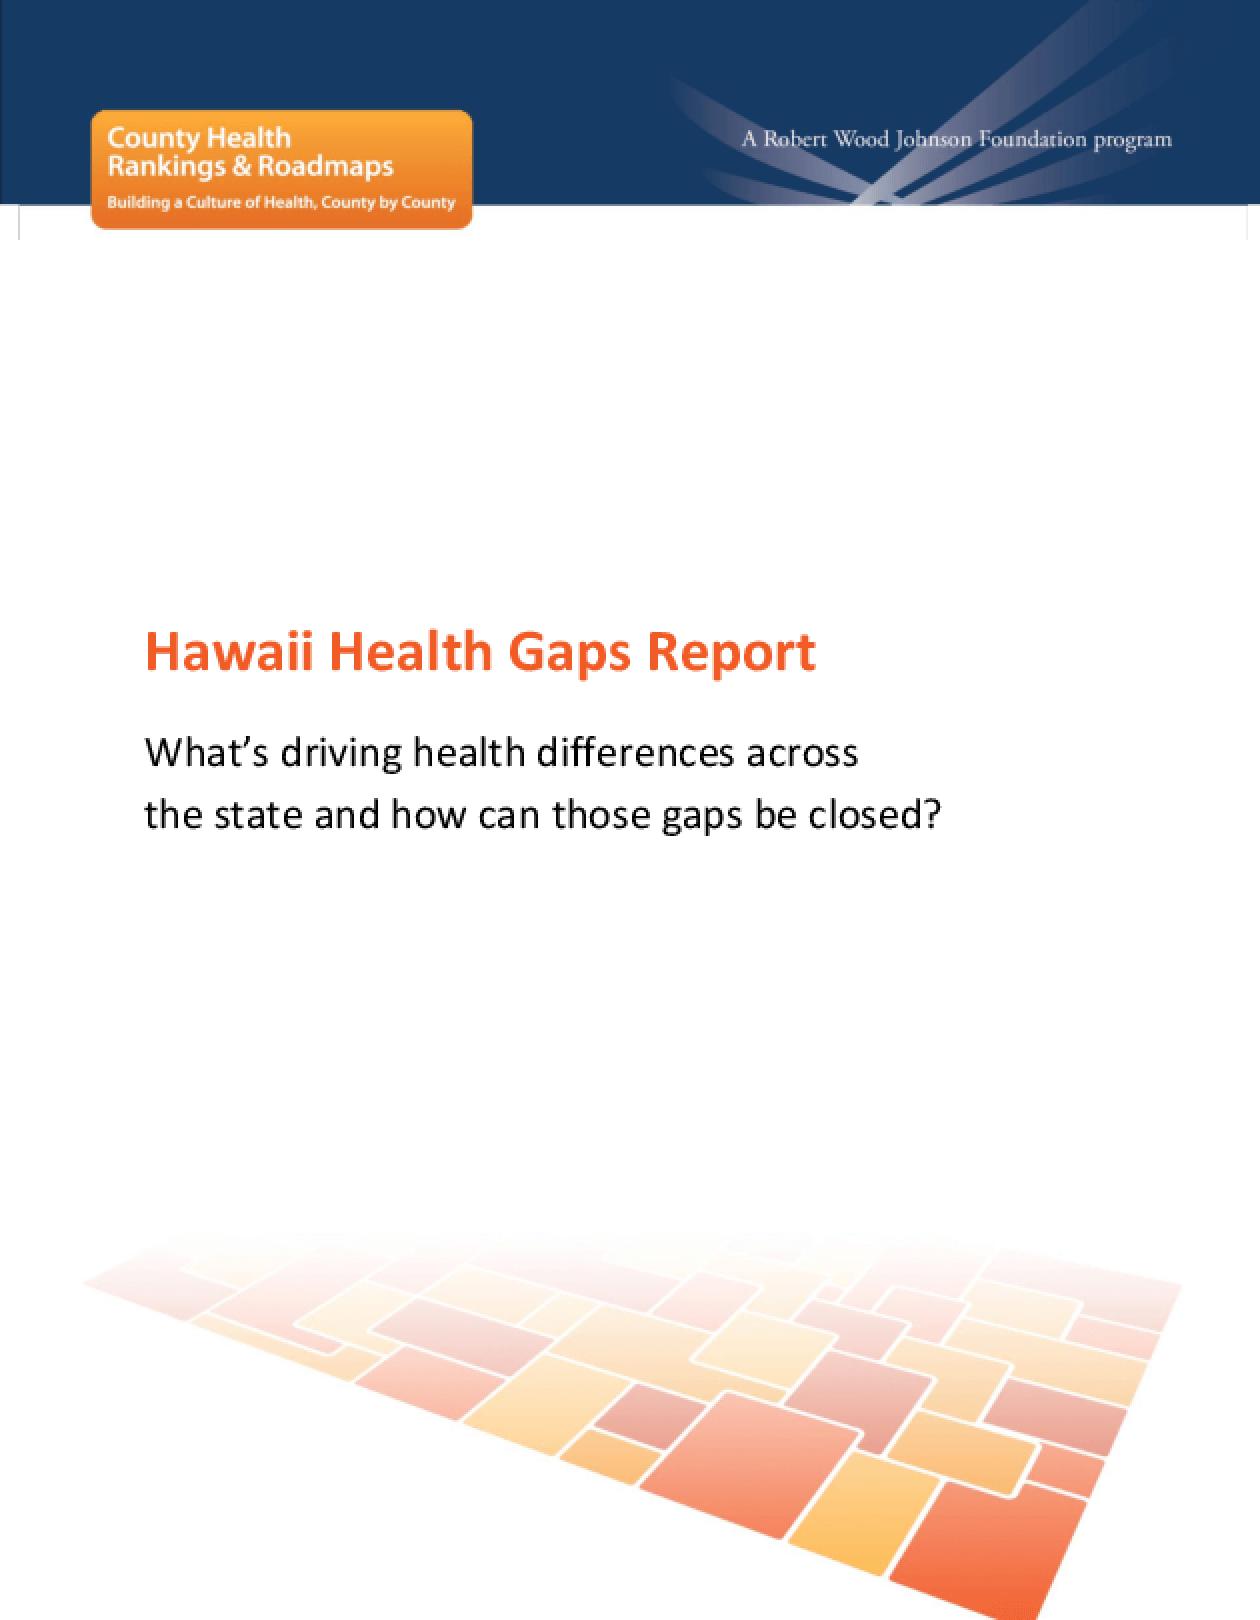 Hawaii Health Gaps Report: What's Driving Health Differences Across the State and How Can Those Gaps Be Closed?